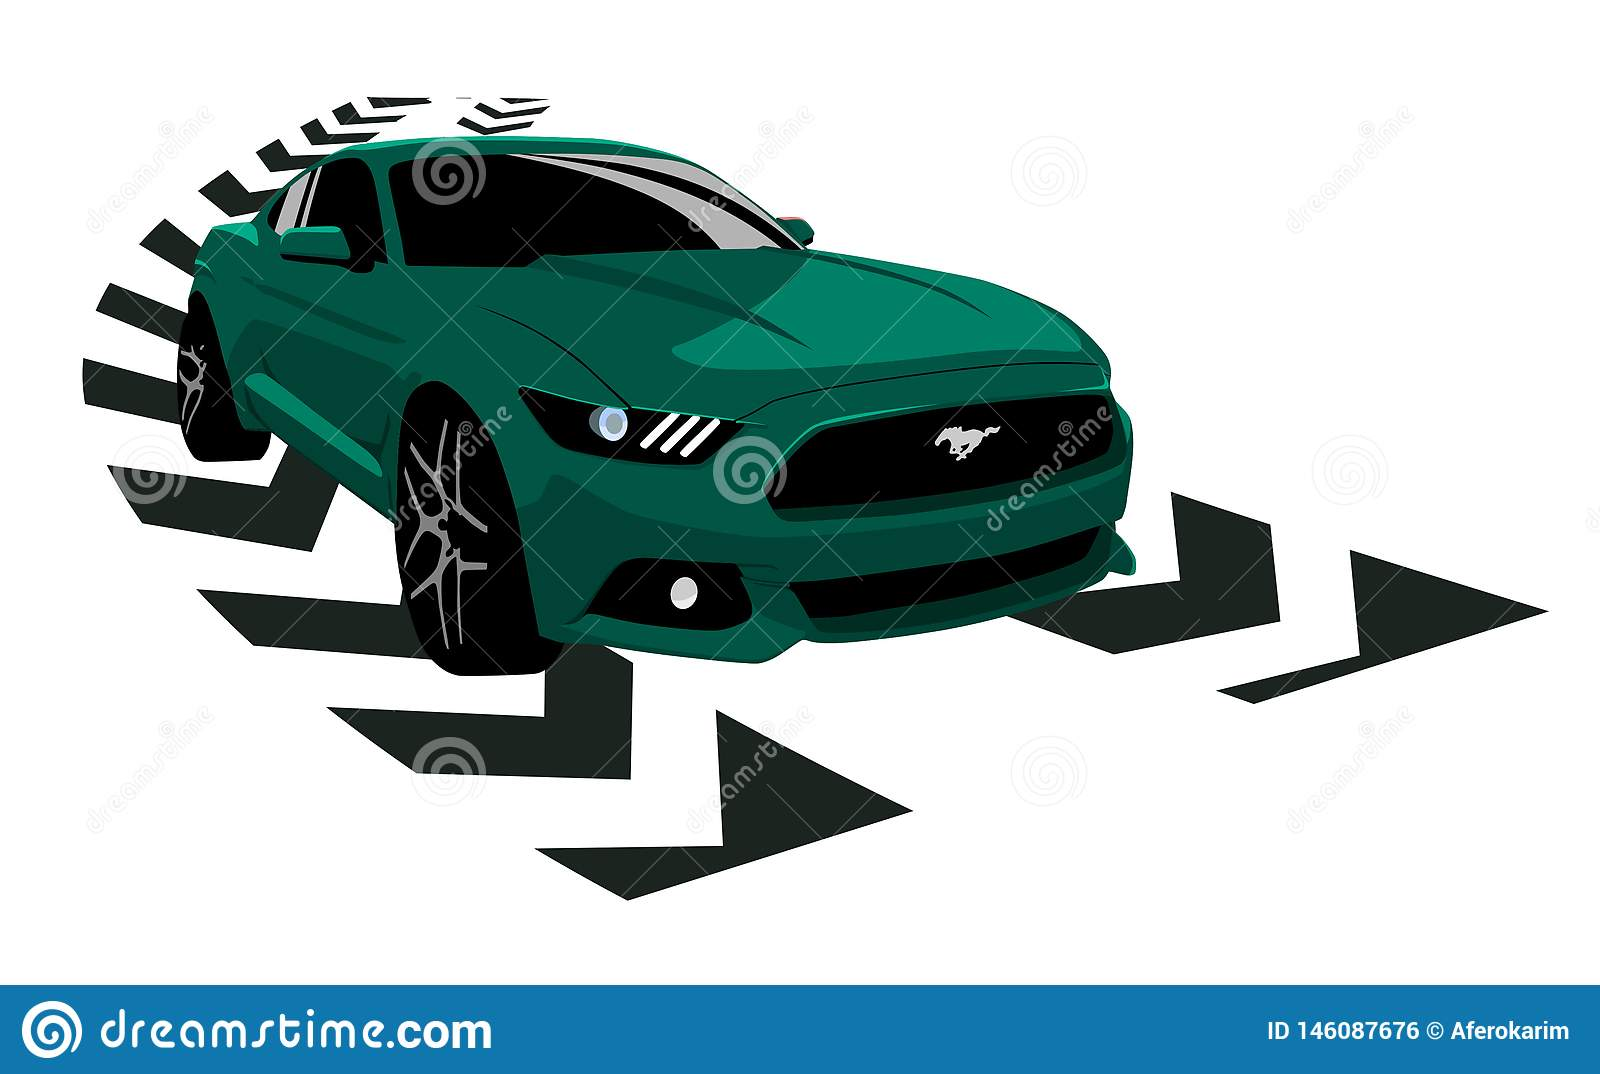 Mustang Shelby GT 350